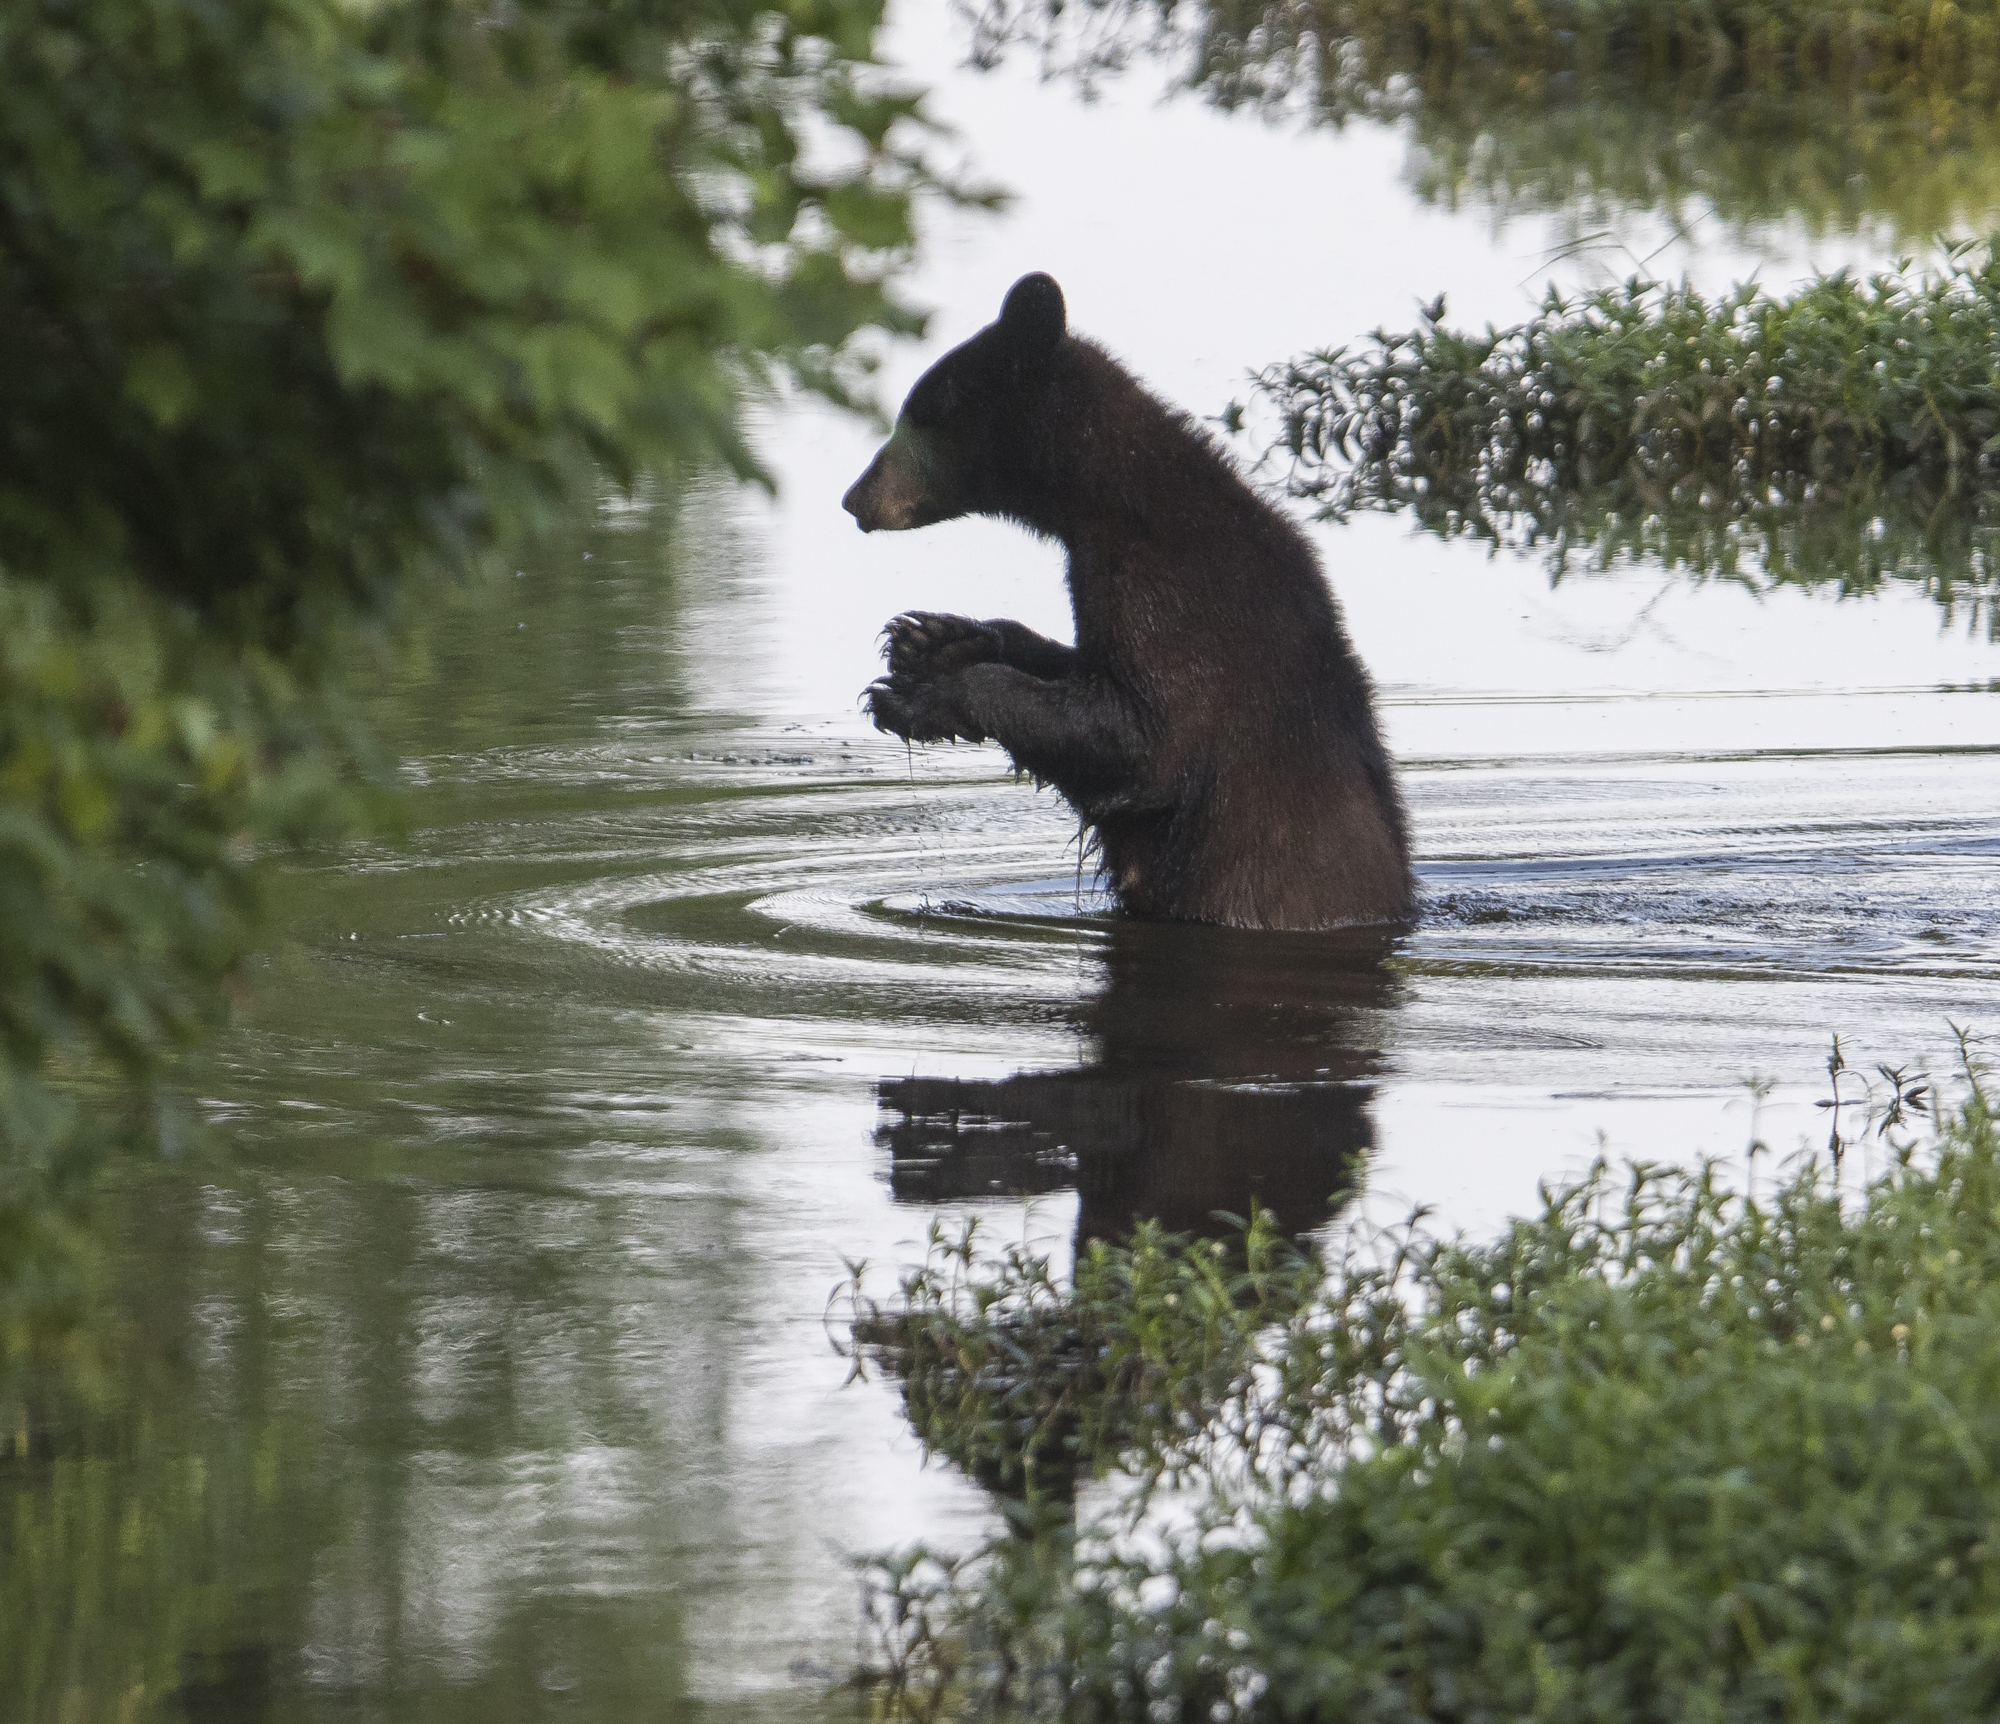 Black bear walking across canal